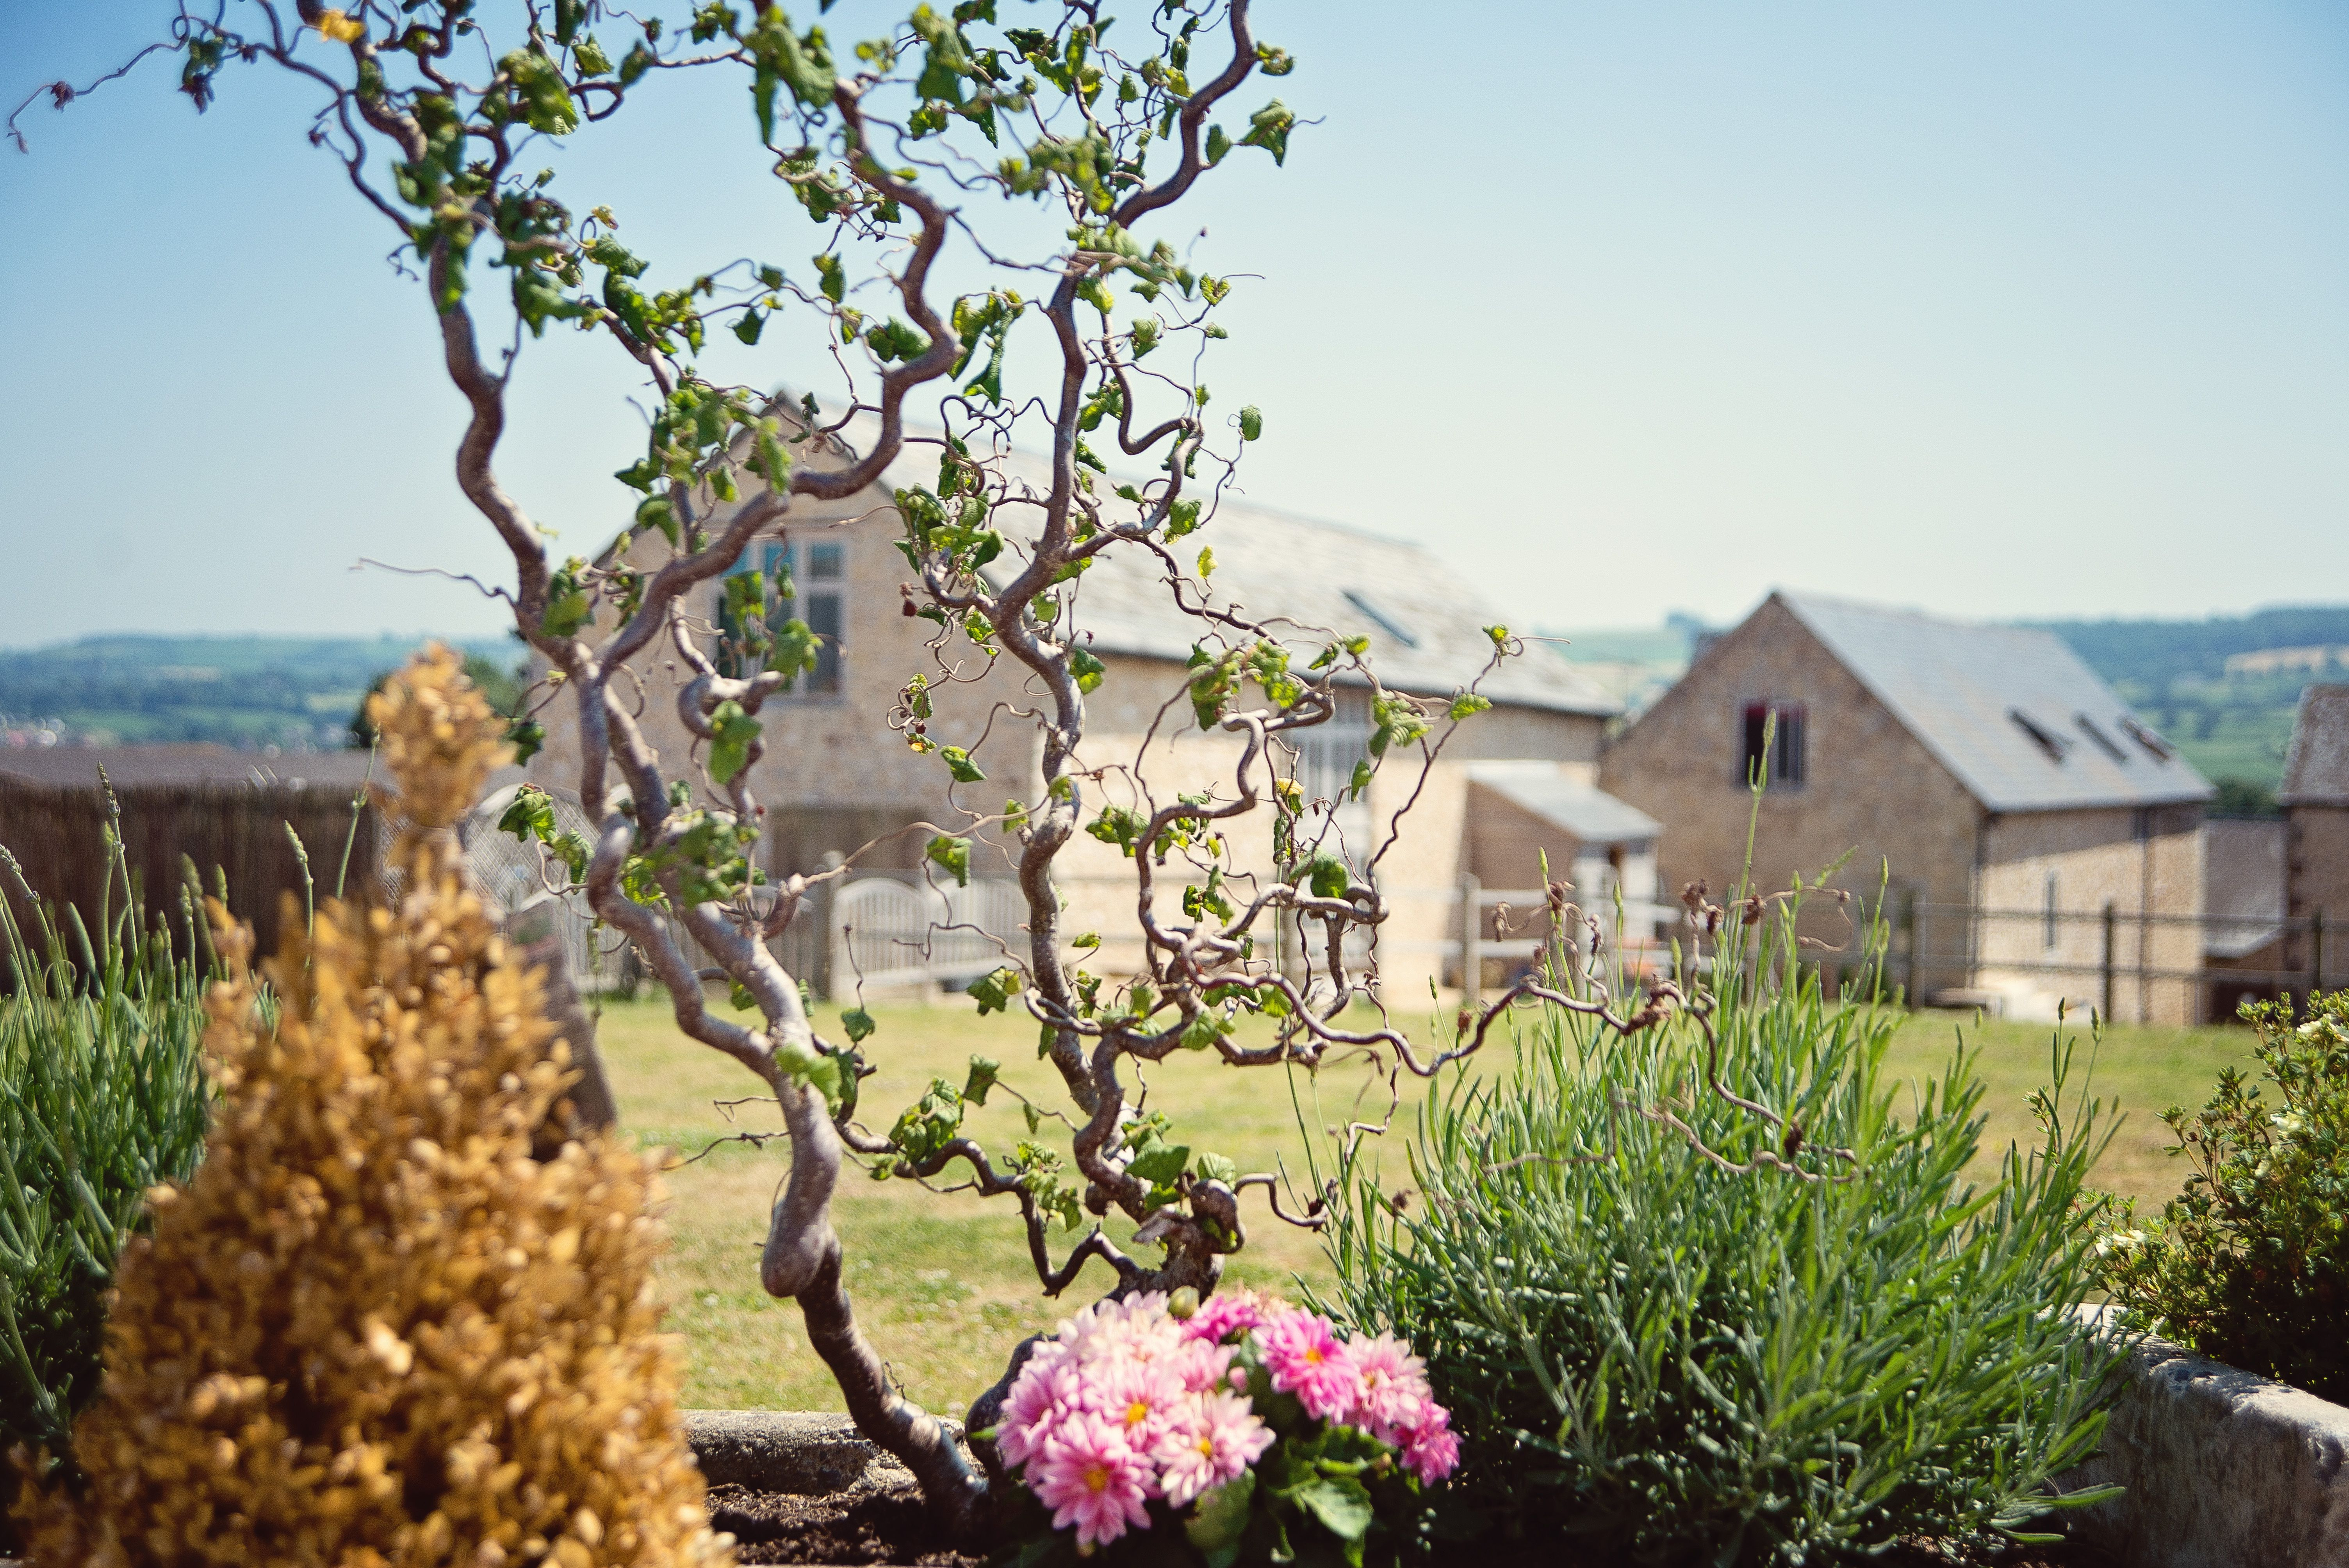 The garden view to the Milking parlour at Cranberries